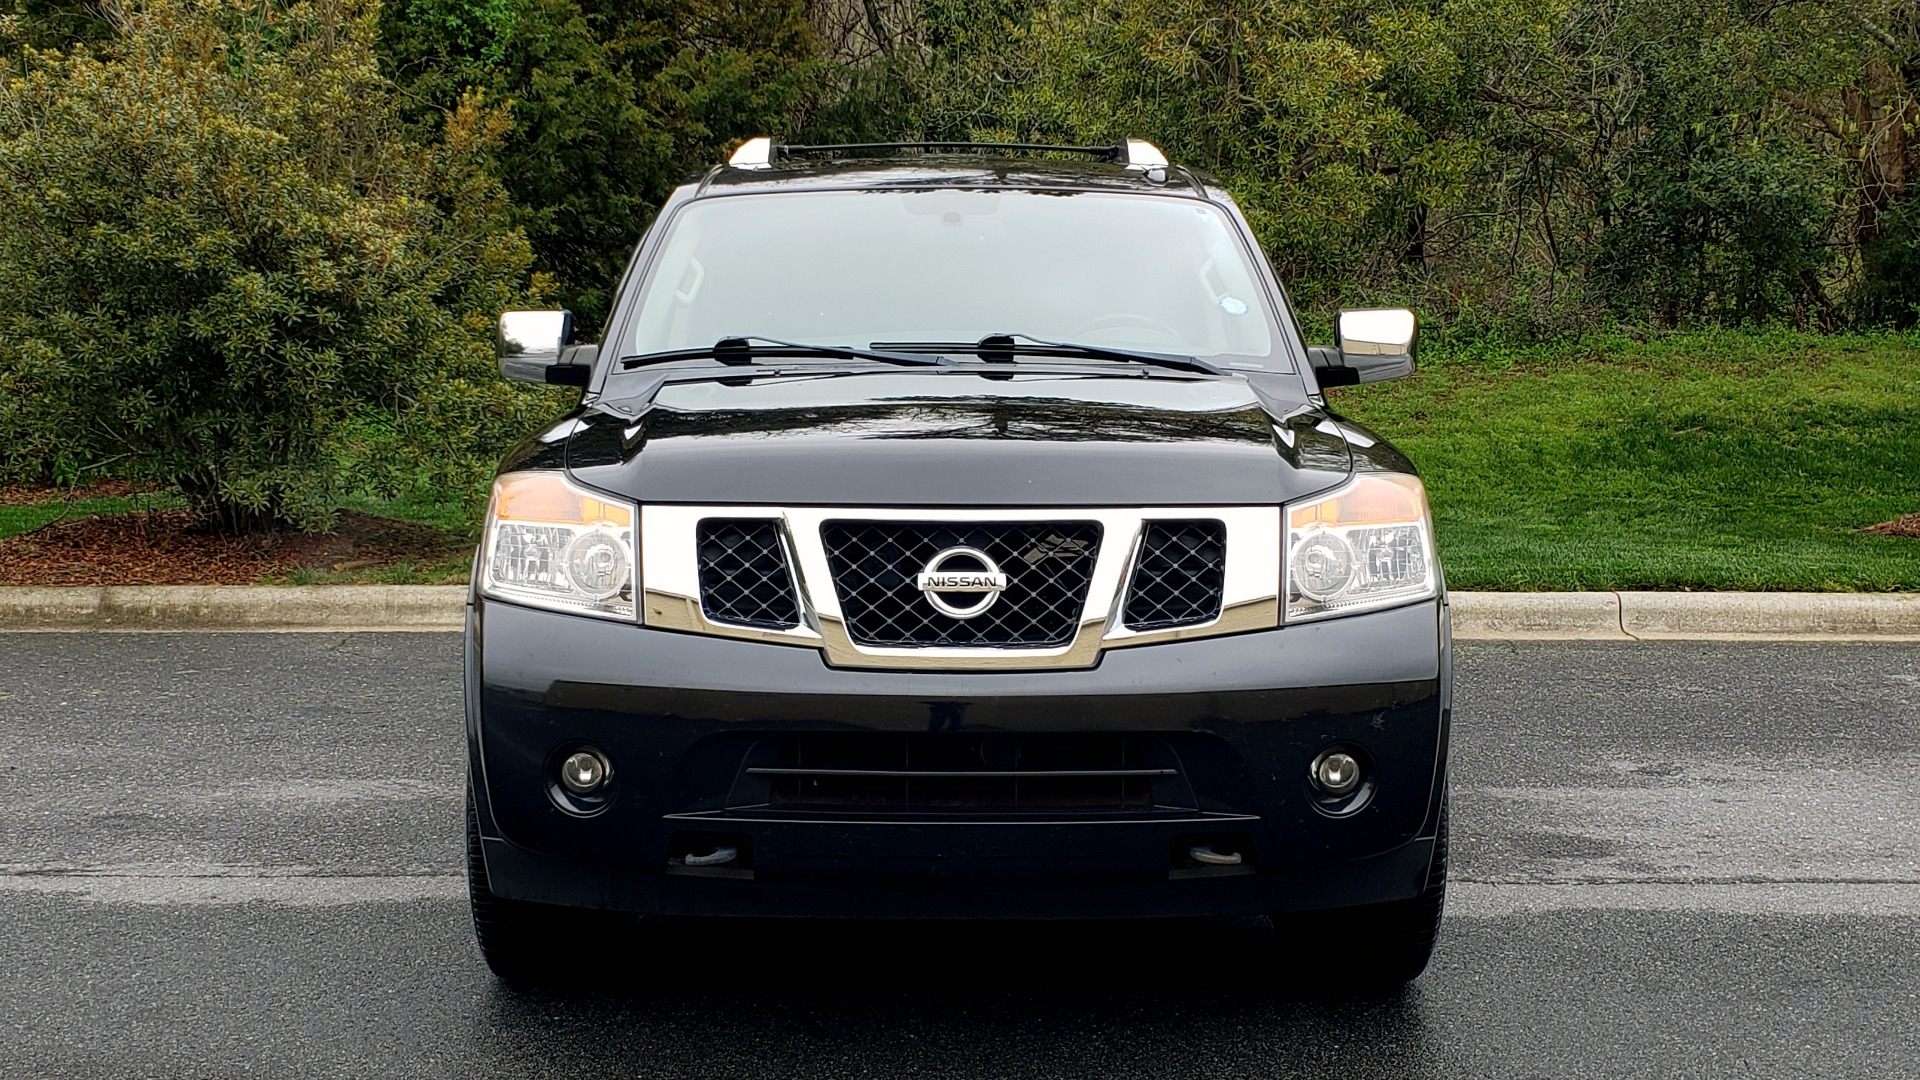 Used 2013 Nissan ARMADA SL 4WD / 5.6L V8 / NAV / SUNROOF / 3-ROW / REARVIEW for sale Sold at Formula Imports in Charlotte NC 28227 23